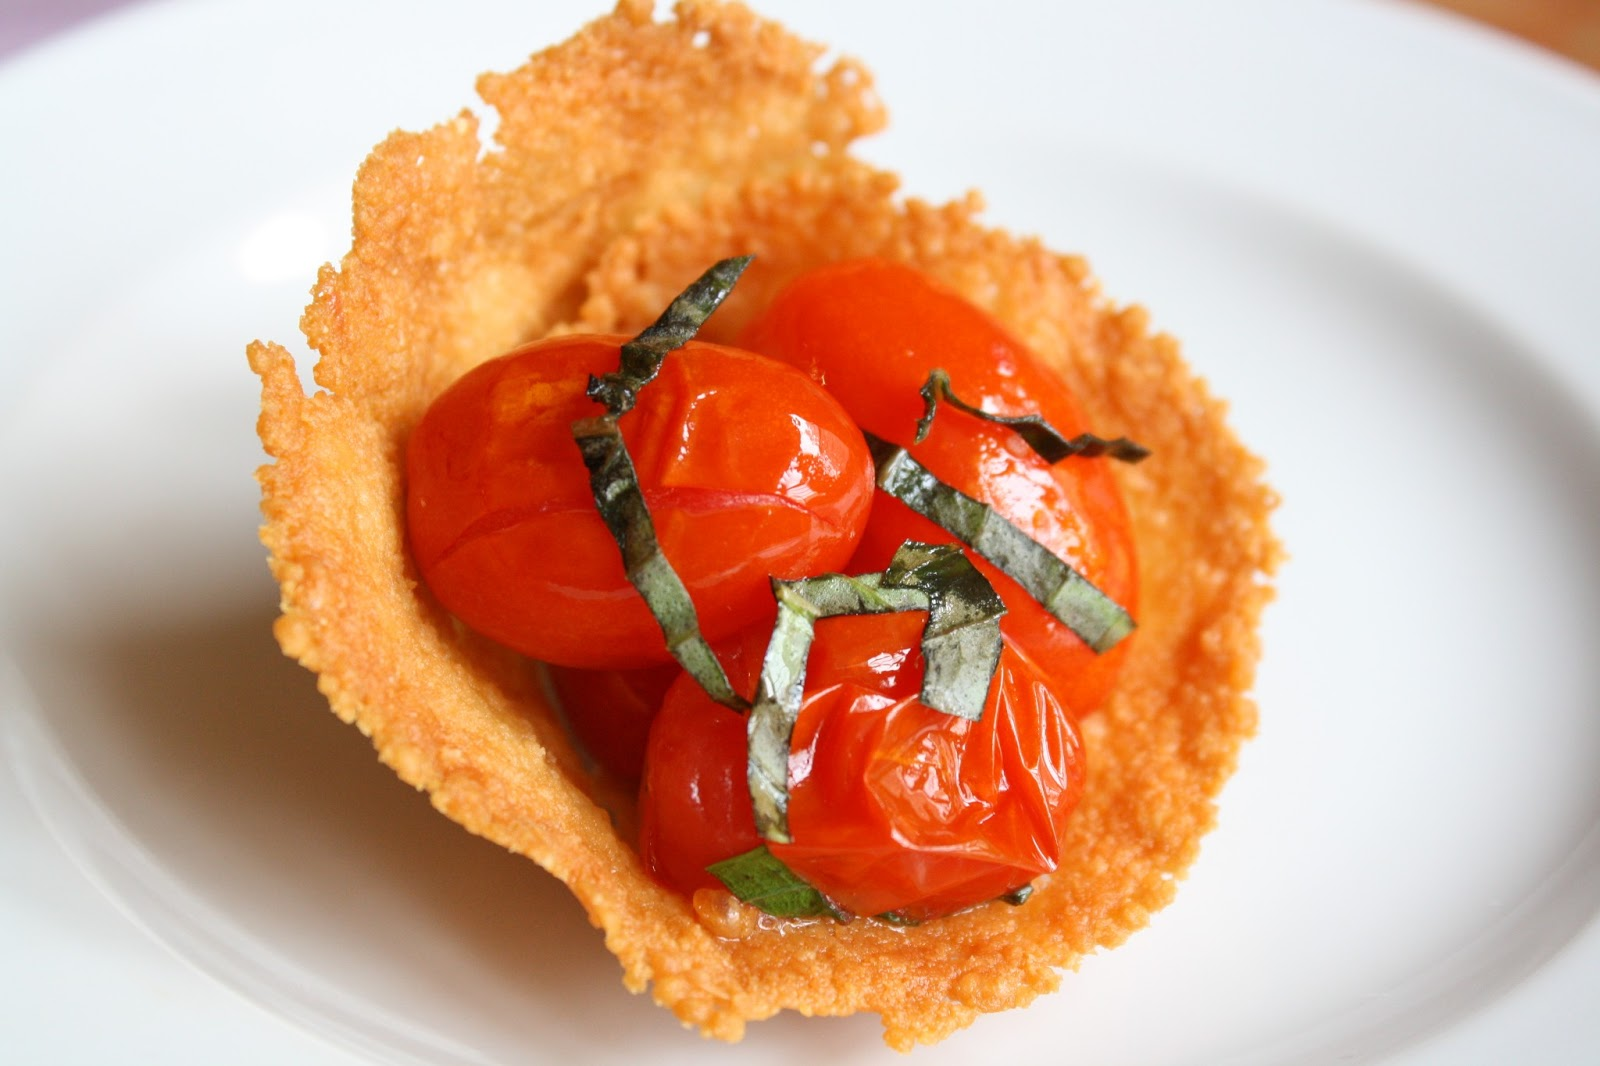 Make Meals Mama Roasted Tomatoes With Parmesan Crisps